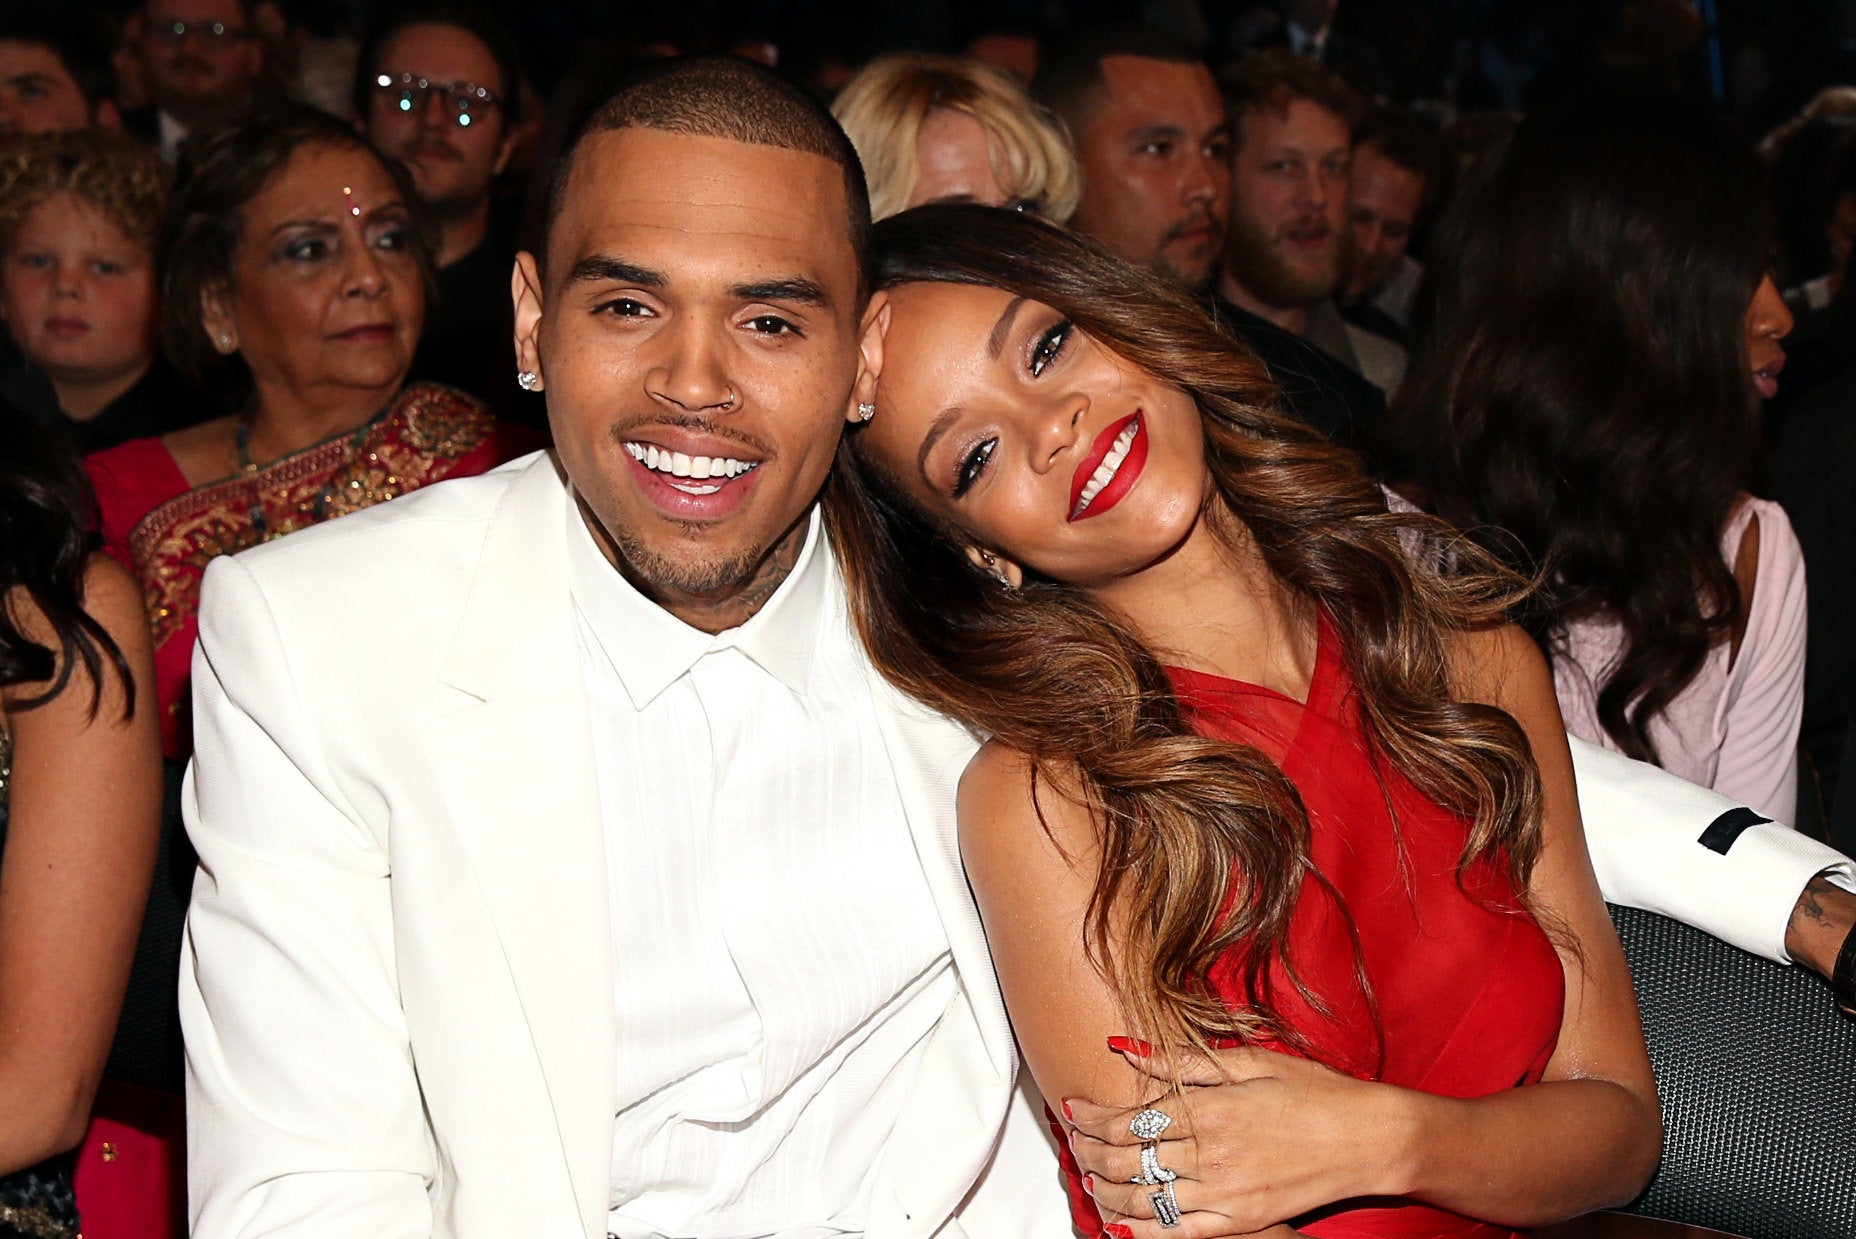 Who is chris brown dating april 2018